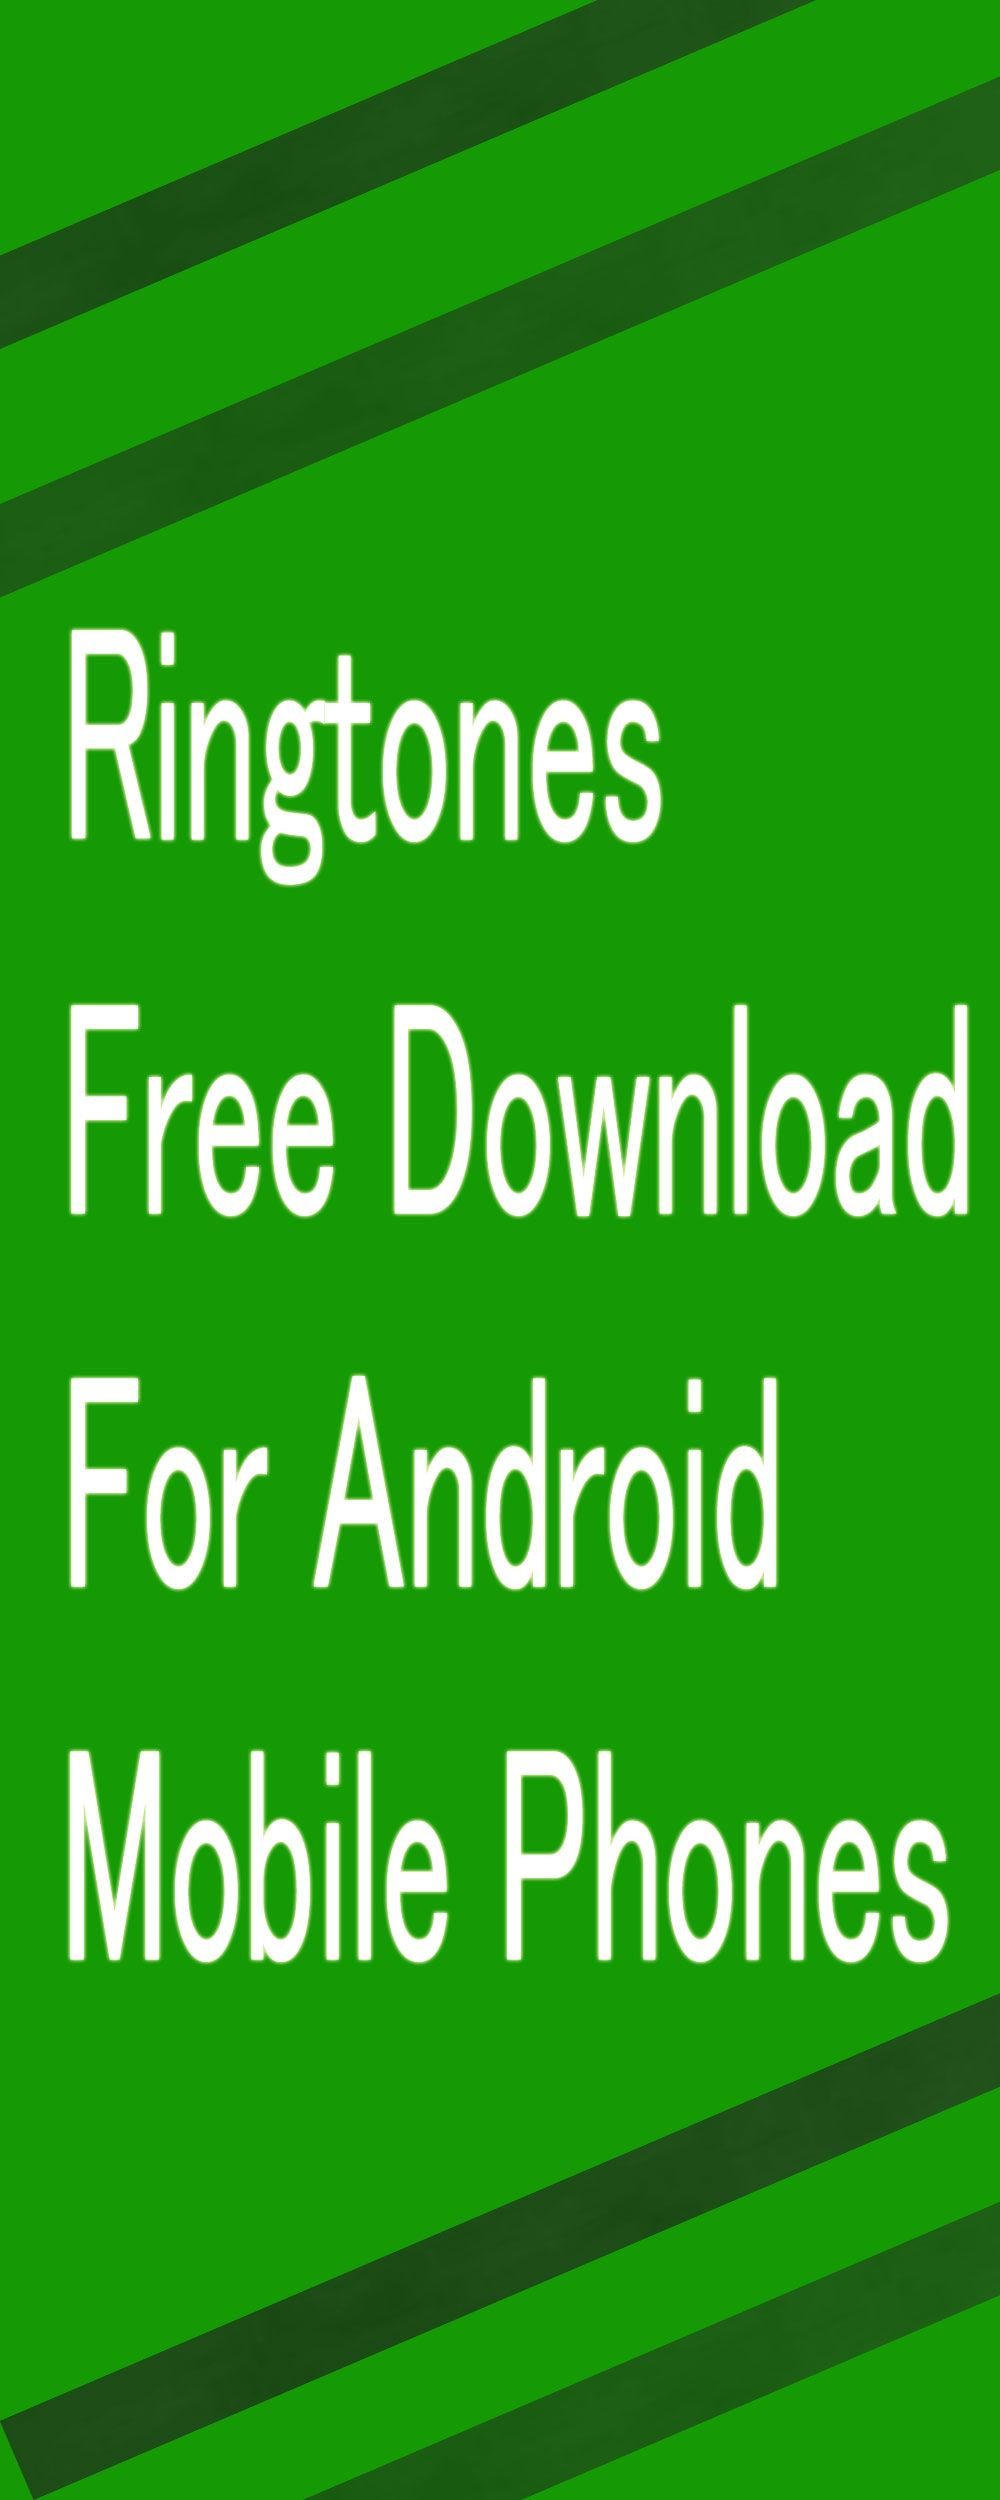 Free Ringtones Download For Android Phones Ringtones For Android Free Free Ringtones Download Free Ringtones